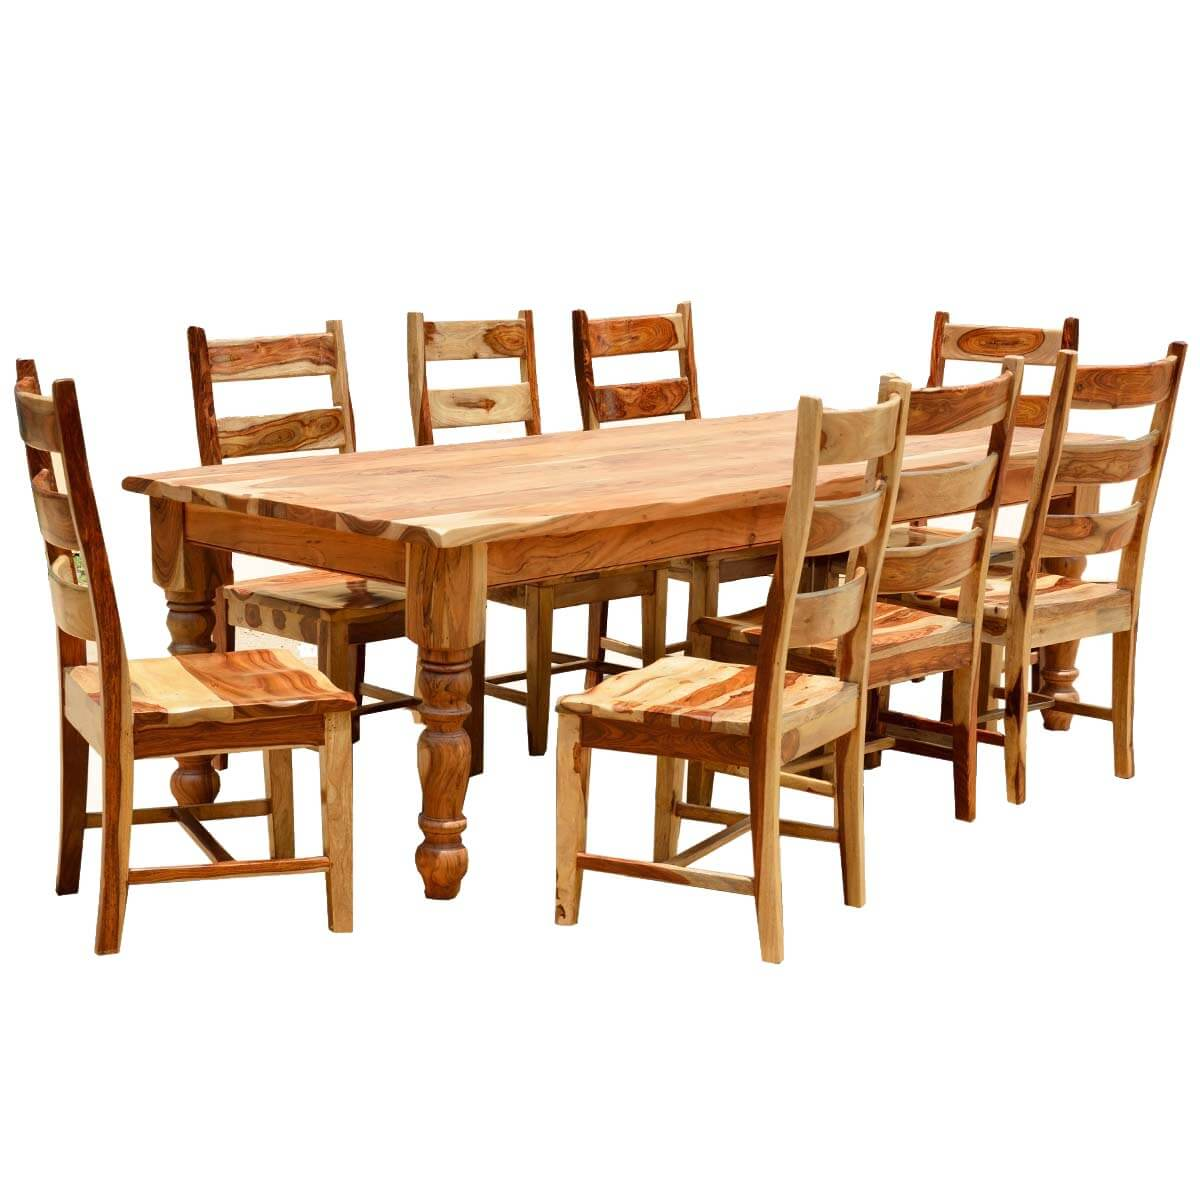 Rustic solid wood farmhouse dining room table chair set for Dining room table and bench set